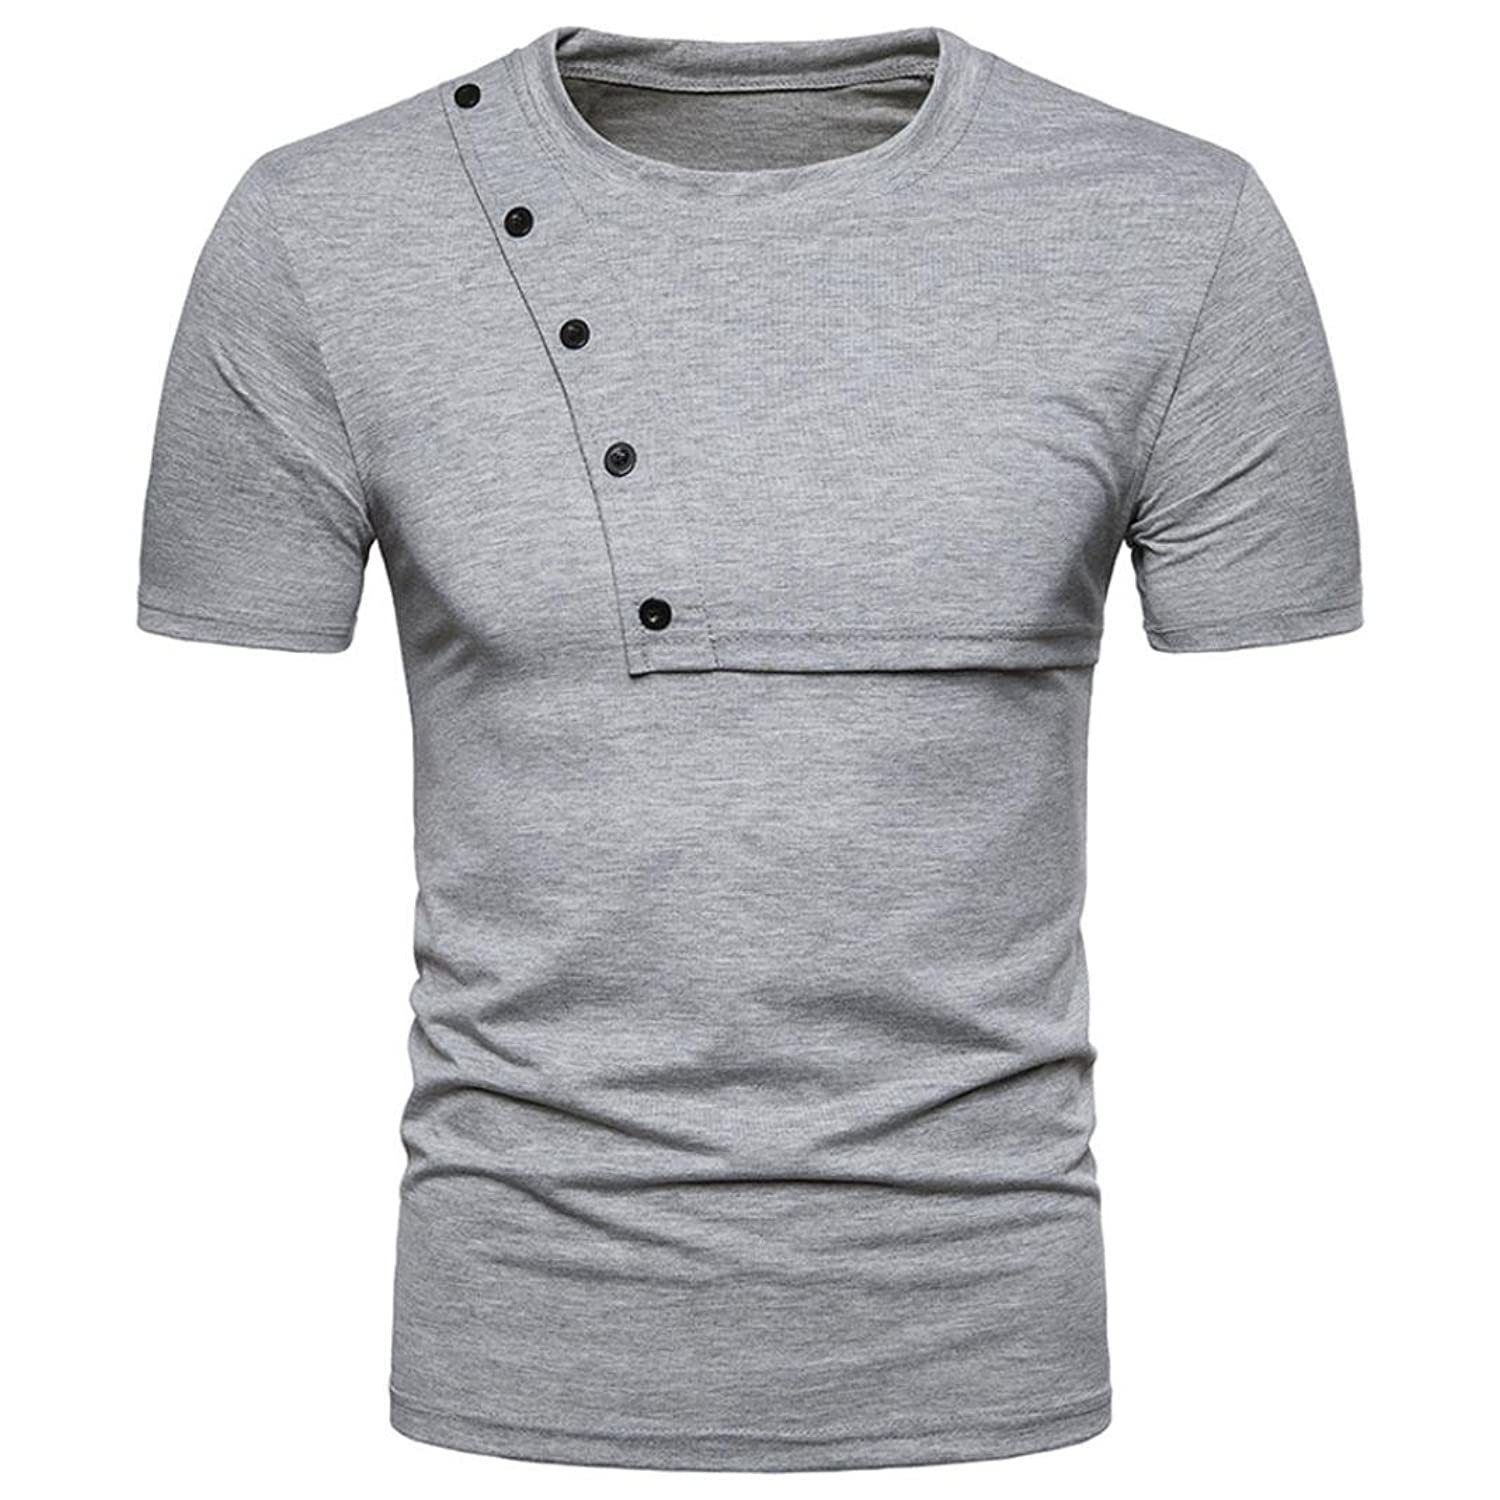 09fffed1 ☆SPE969 Top Blouse Hot Sale Men's Casual Slim Zipper Short Sleeve T Shirt  ☆Friends come and go, but the championship banner has been there, blowing  in the ...